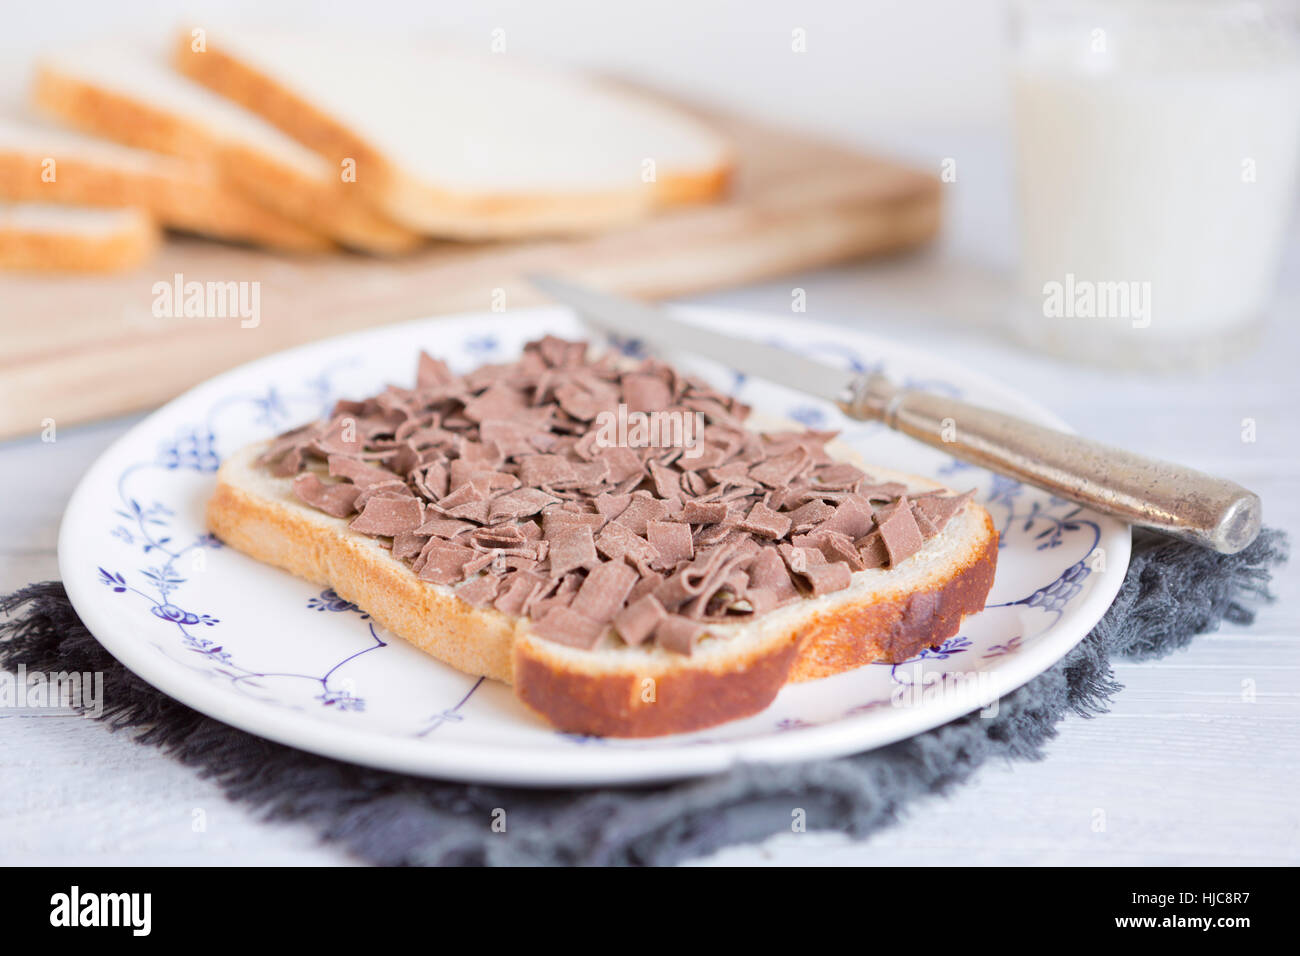 A sandwich with chocolate sprinkles or 'vlokken', Dutch traditional food. - Stock Image